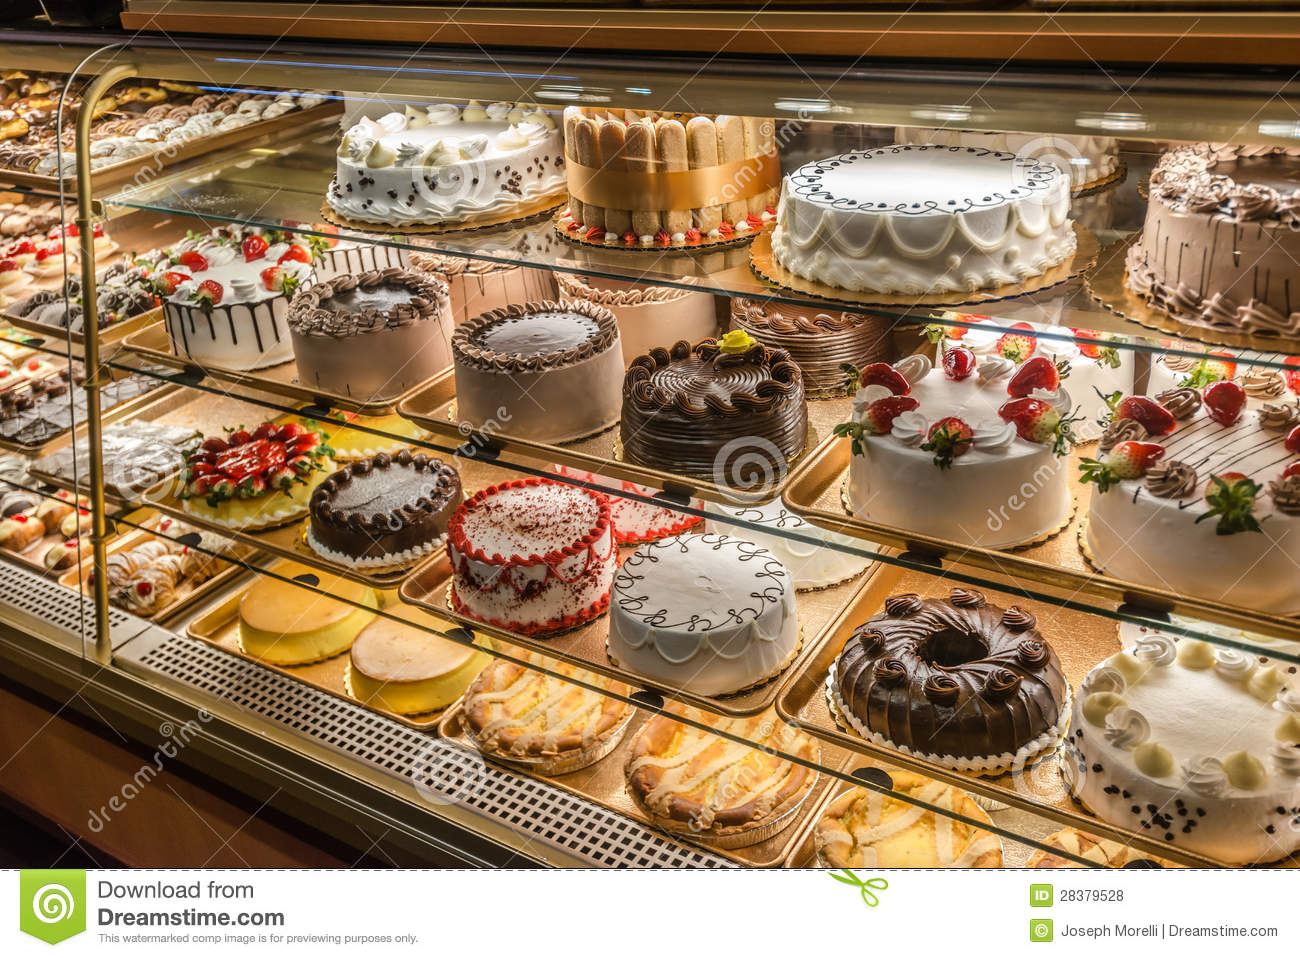 Cakes on display in an Italian Bakery in Little Italy, Bronx, NY.